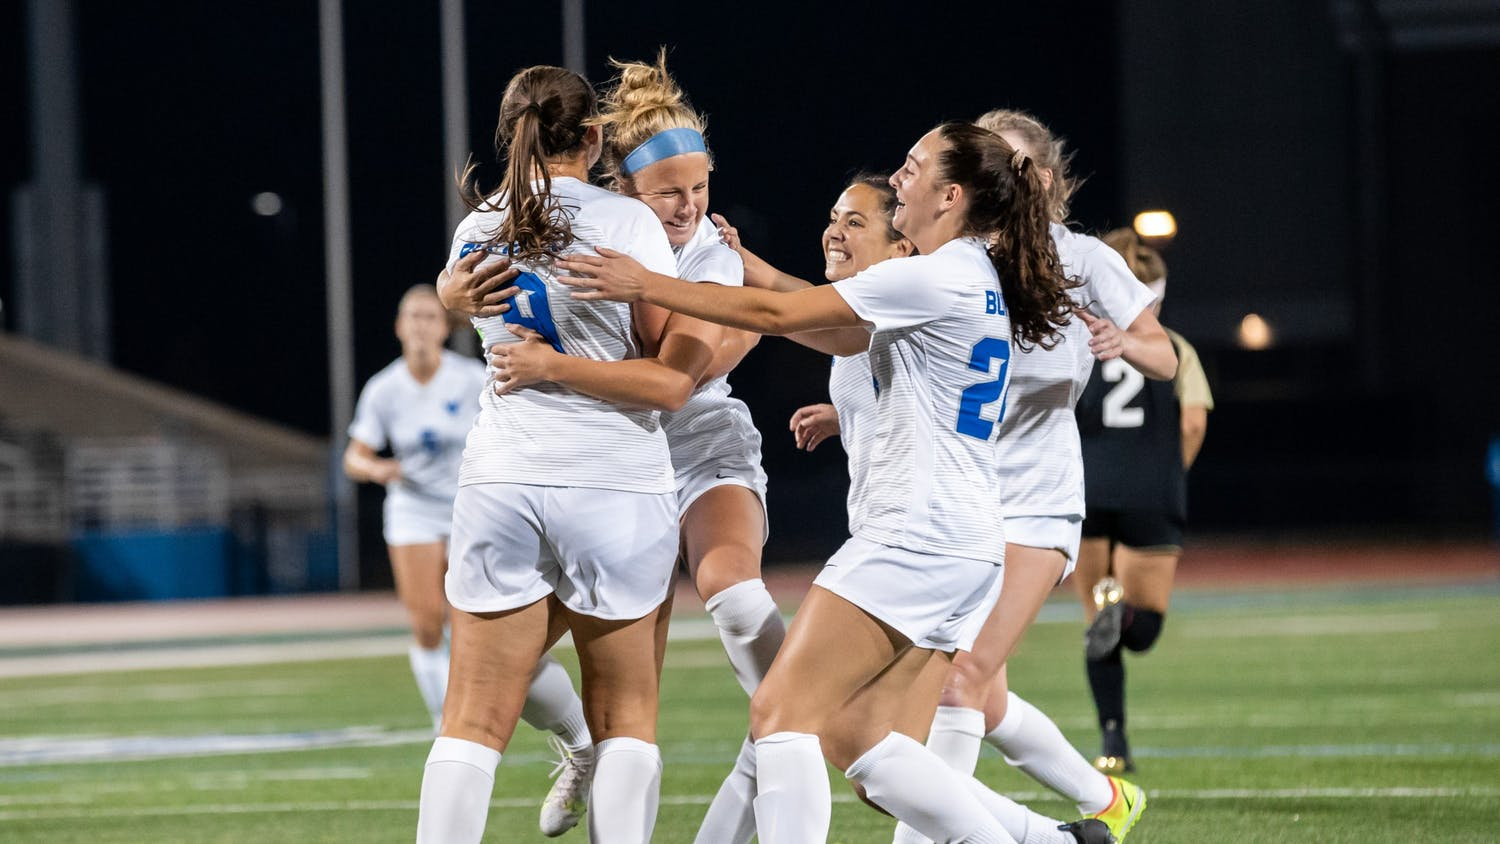 Gianna Yurchak (9), Kaya Schultz (24) and members of the women's soccer team celebrate after scoring a goal over the weekend.